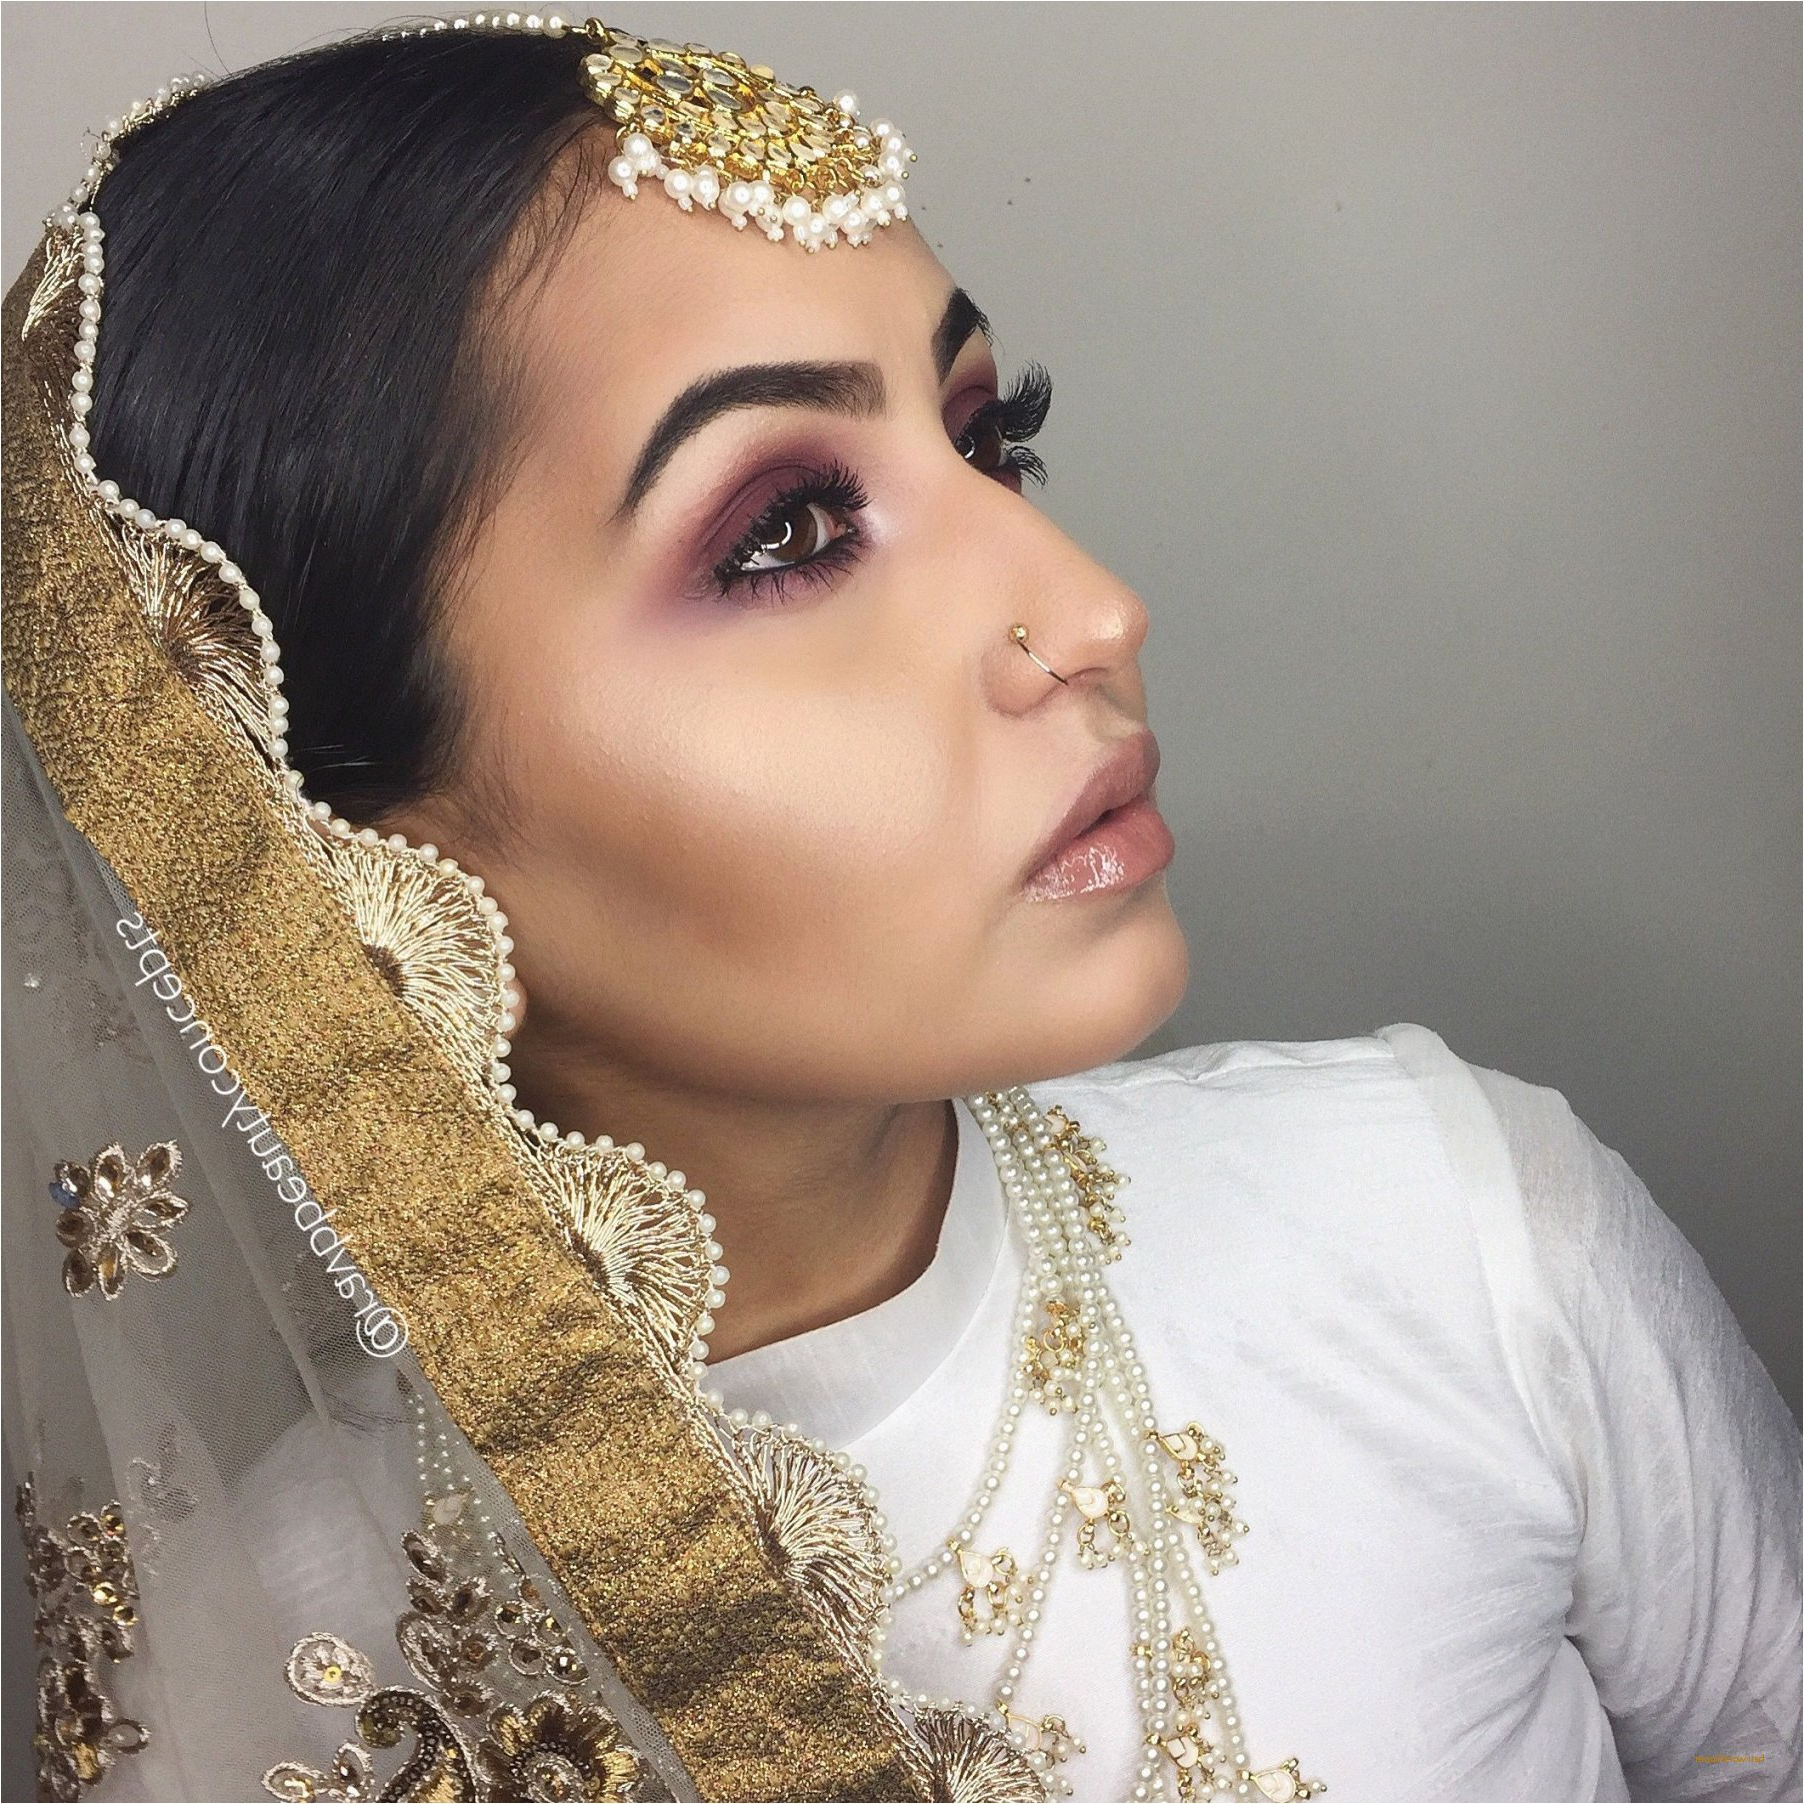 New Simple Indian Wedding Hairstyles For Medium Hair – Hair New For Most Recent Indian Bridal Medium Hairstyles (View 14 of 20)